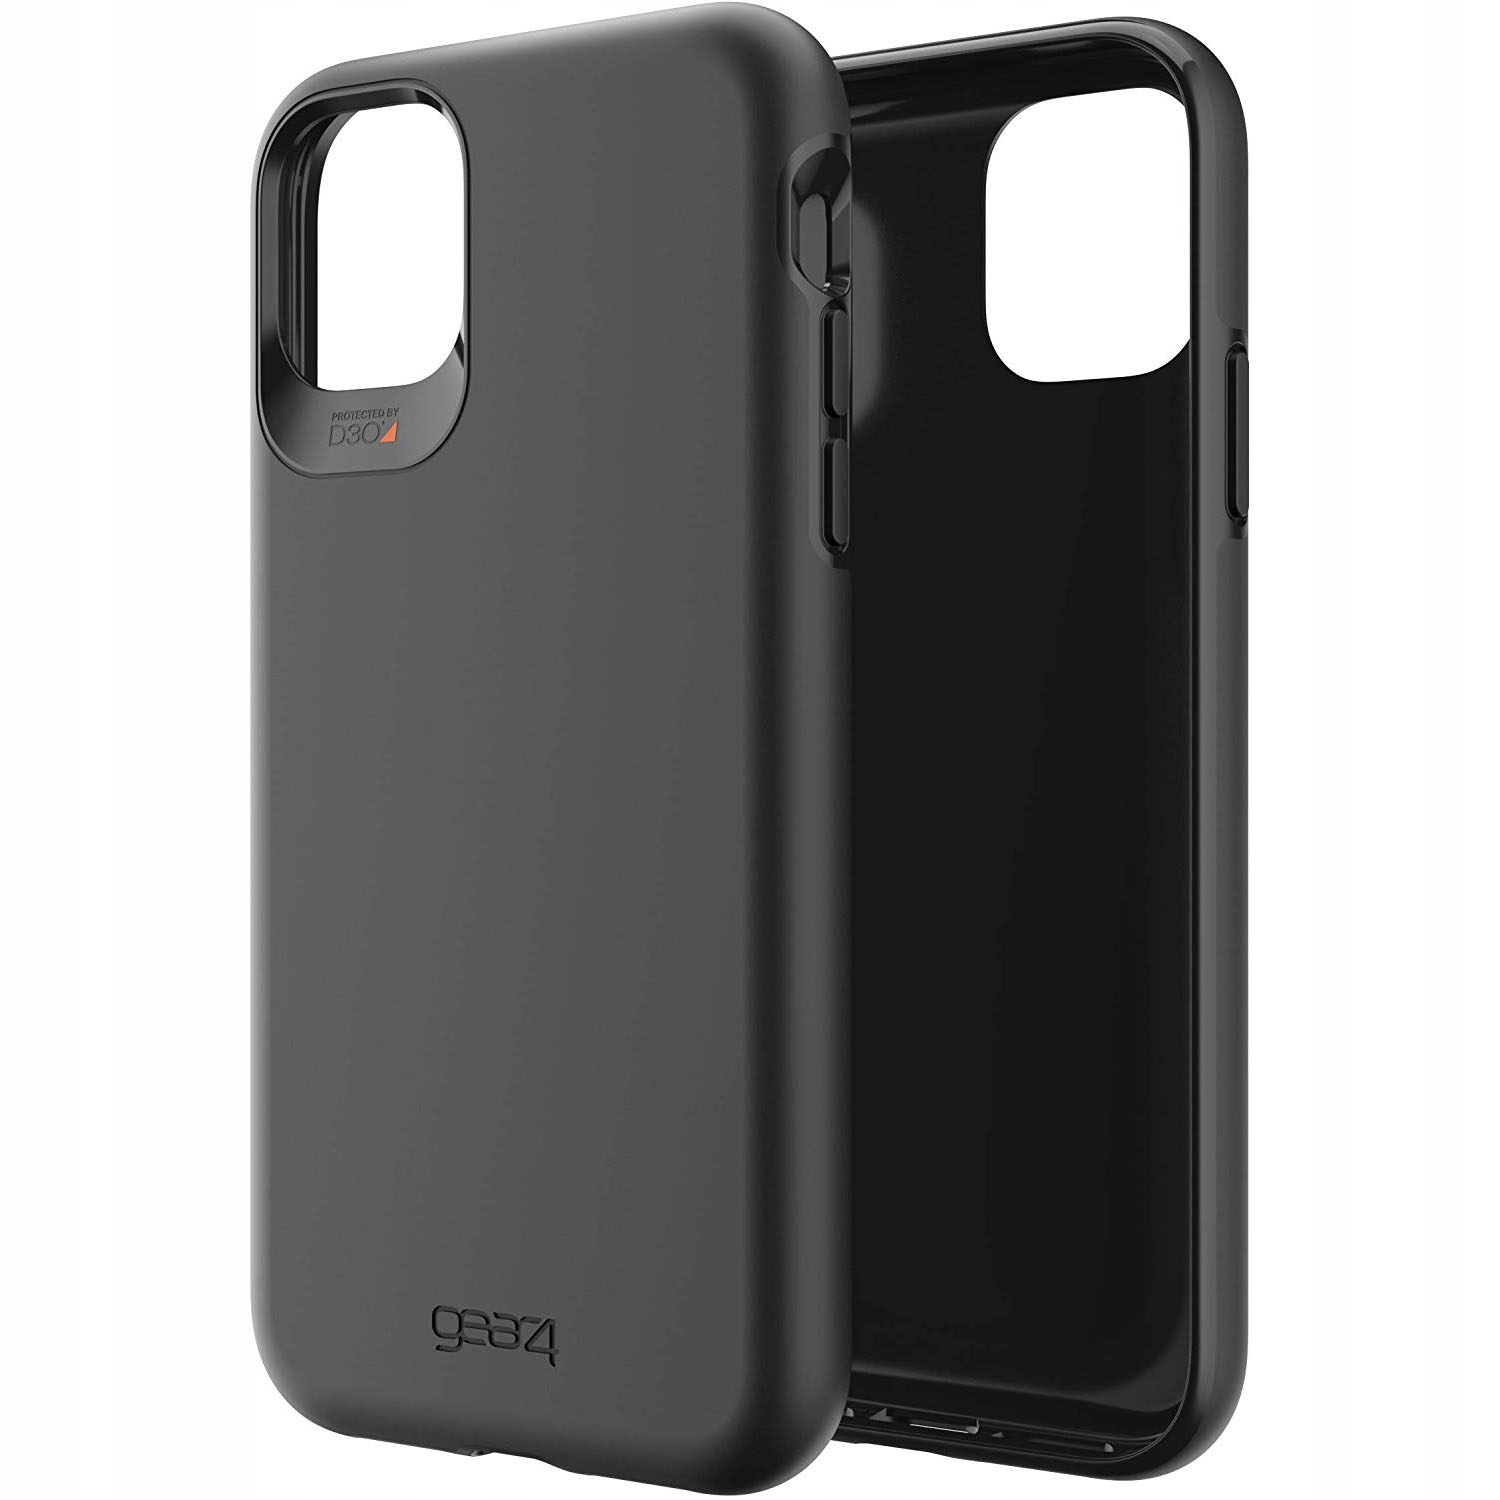 Etui do iPhone 11 Pro, Gear4 Holborn, case, cover